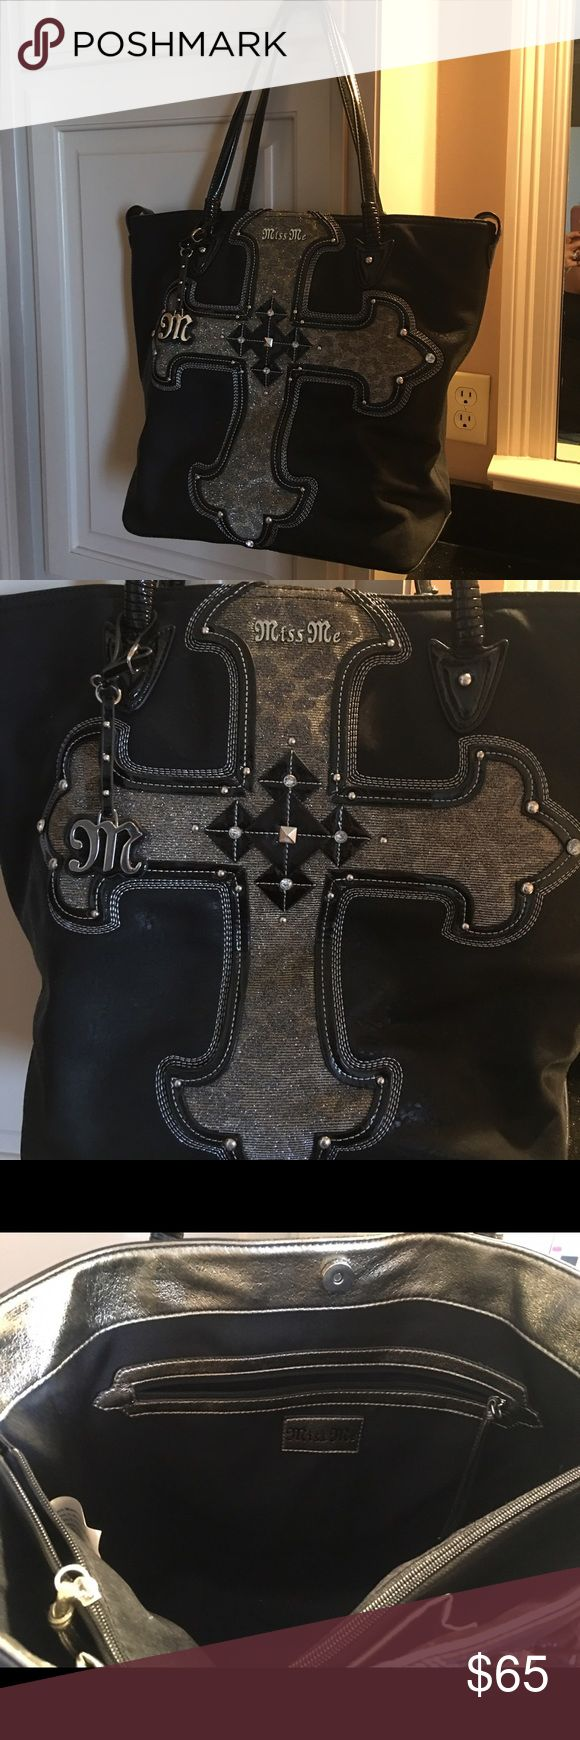 Miss me purse like new Only used once Miss Me Bags Shoulder Bags